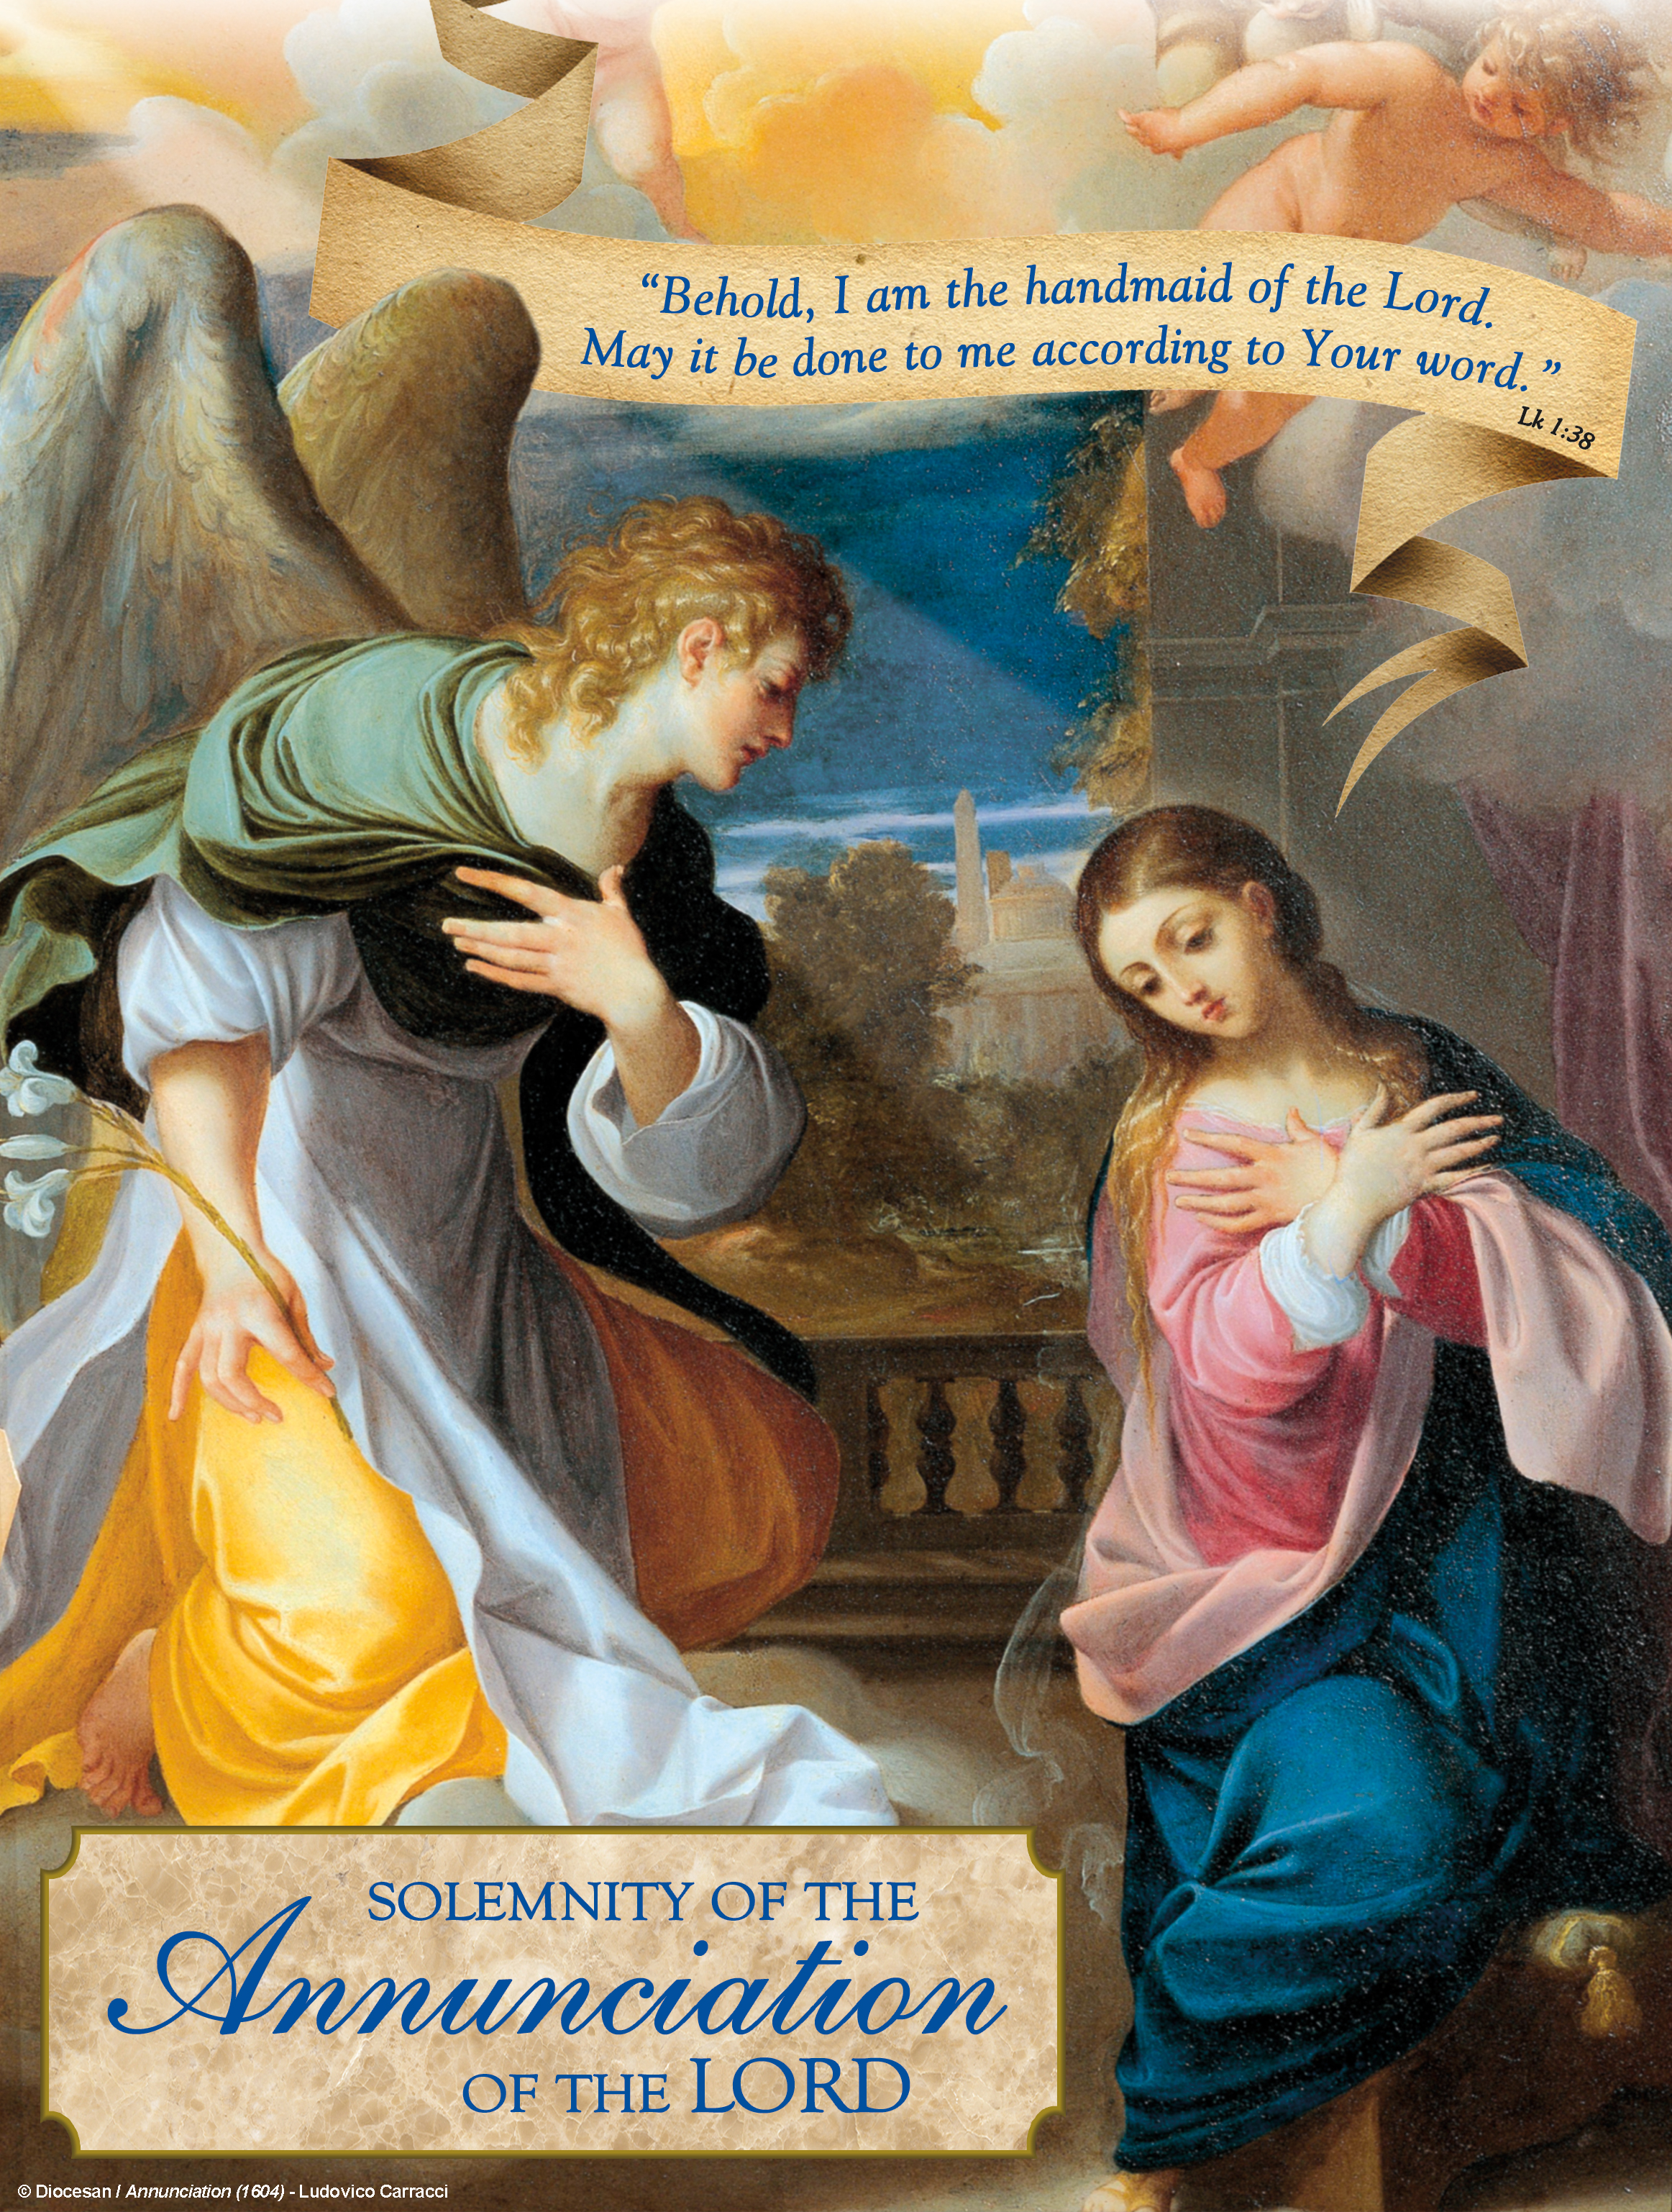 Annunciation - According to Your Word